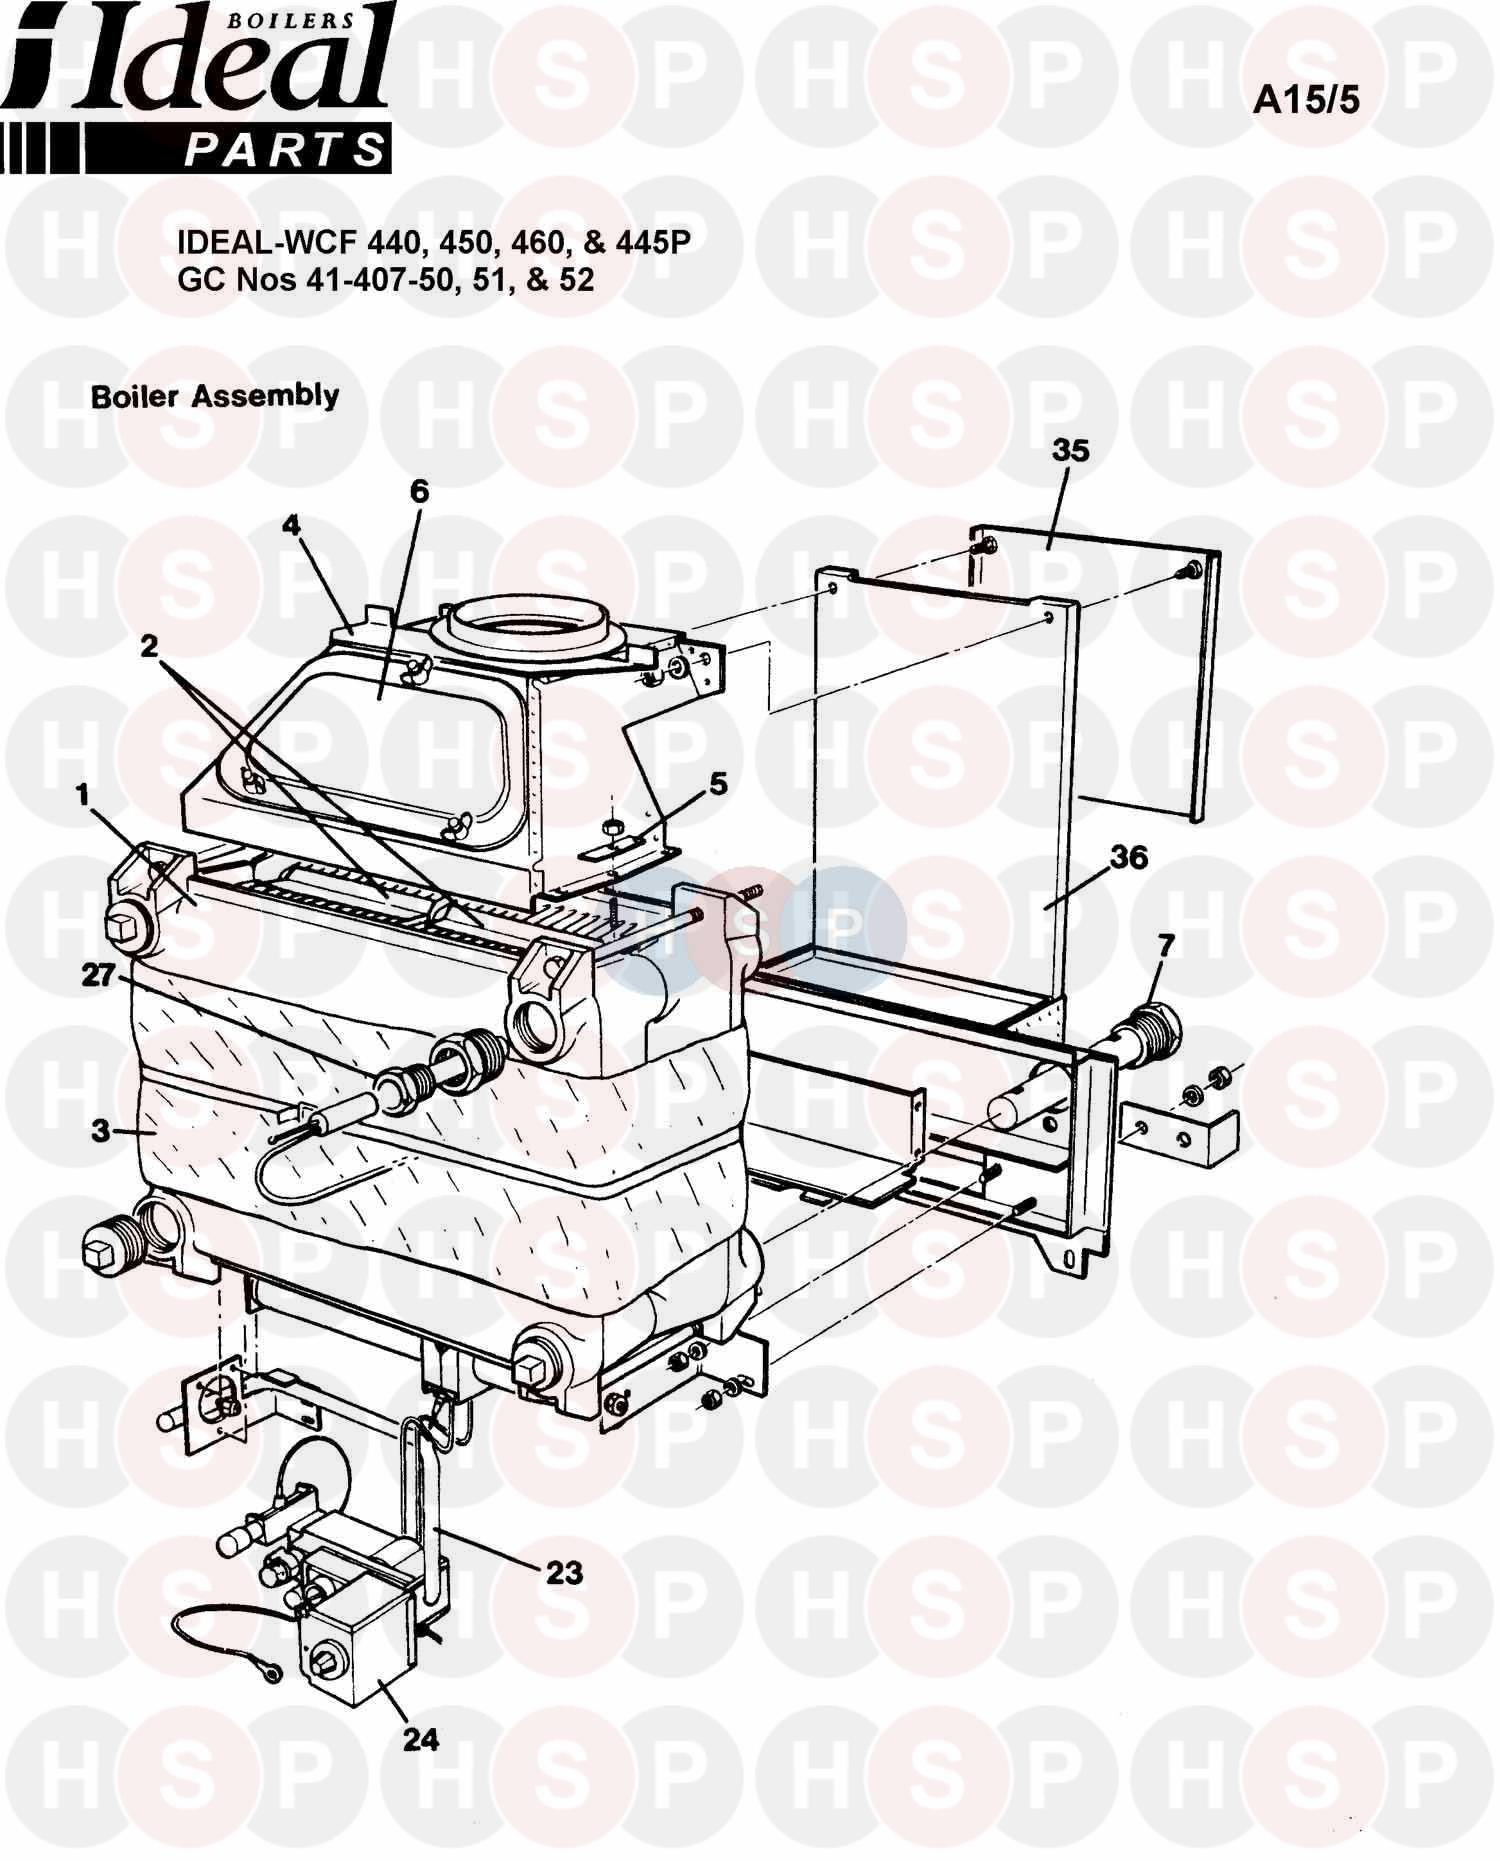 Ideal CONCORD WCF 450 (BOILER ASSEMBLY 1) Diagram